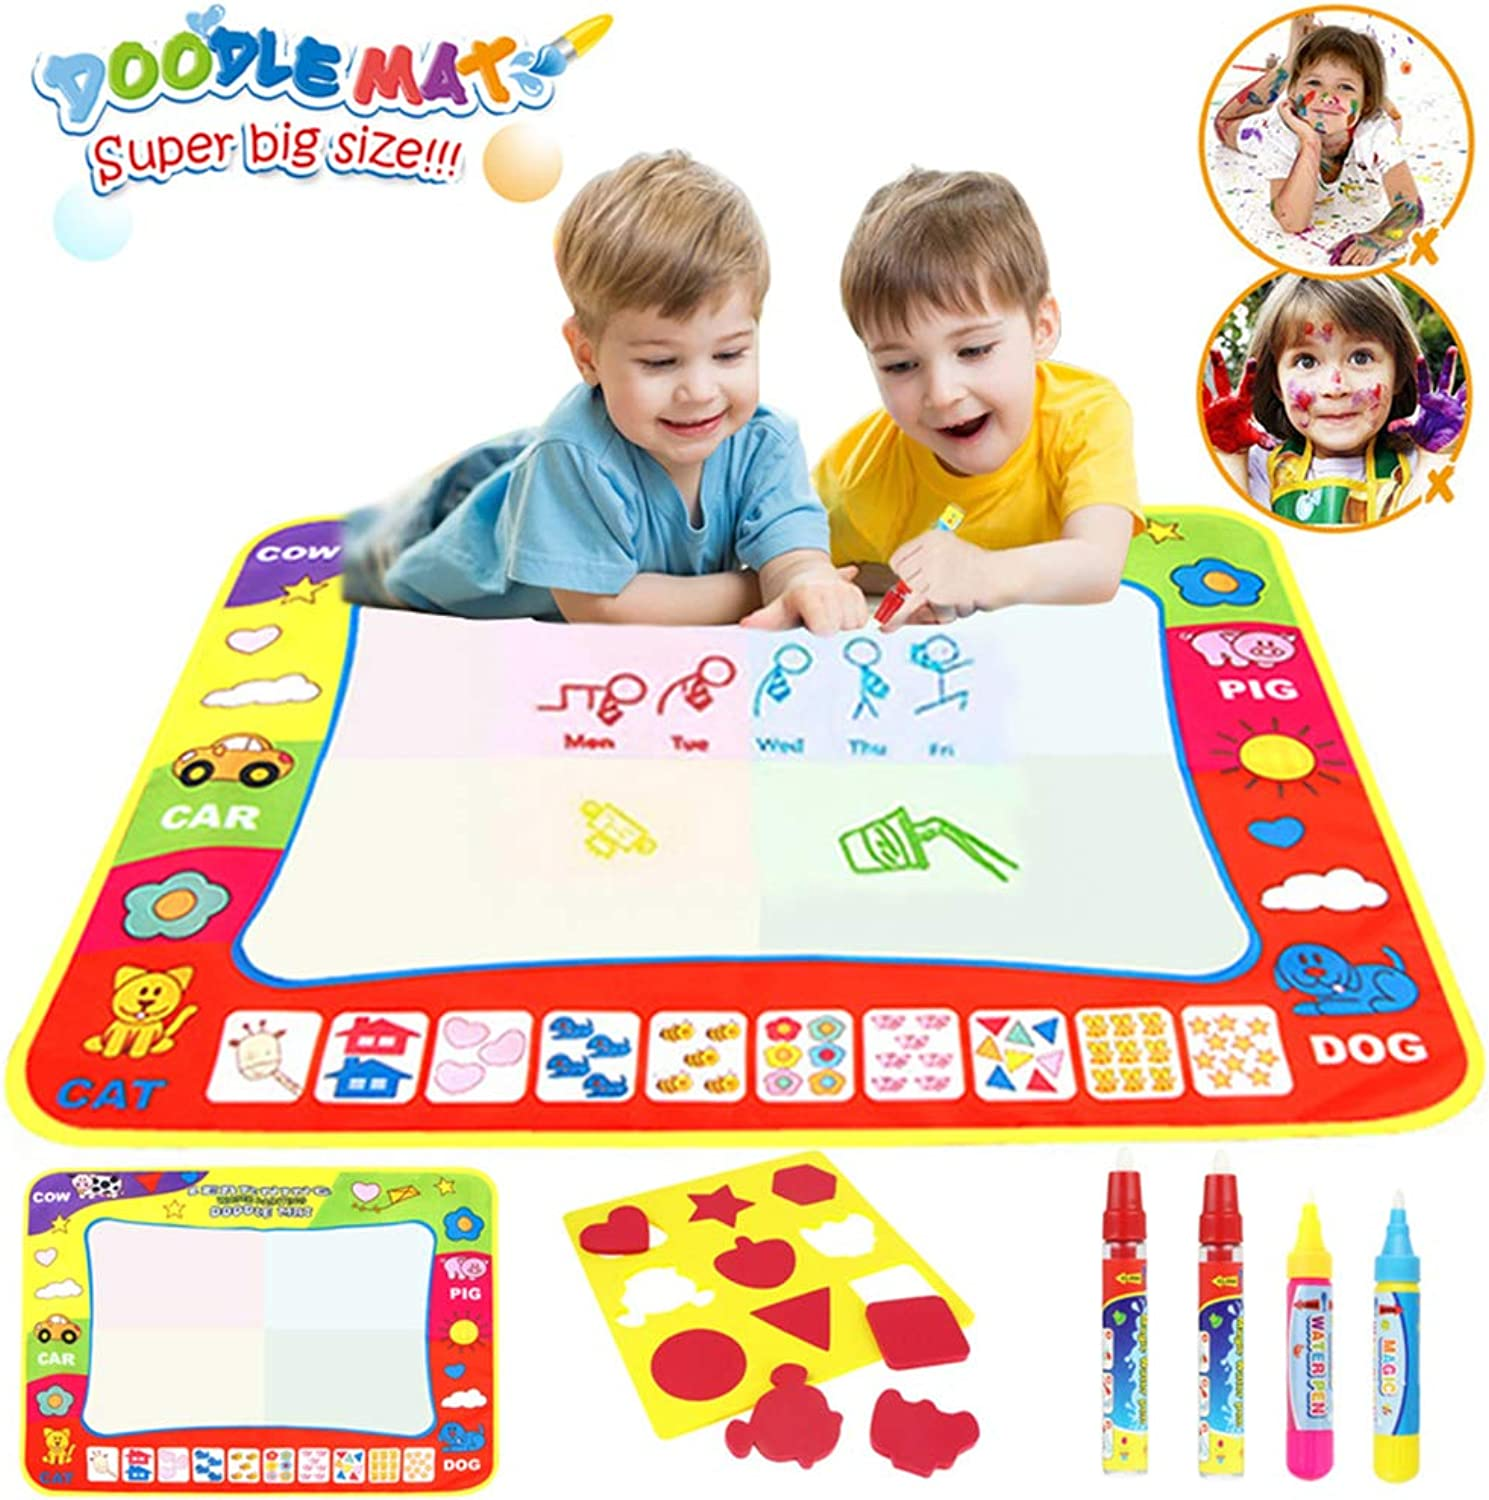 Doodle mat for kids,xhforever 4 color colorful Water Drawing Toys Painting Play Mat Doodle Mat 80cmx60cm +4 Magic Pens + 1 Drawing Shape Board